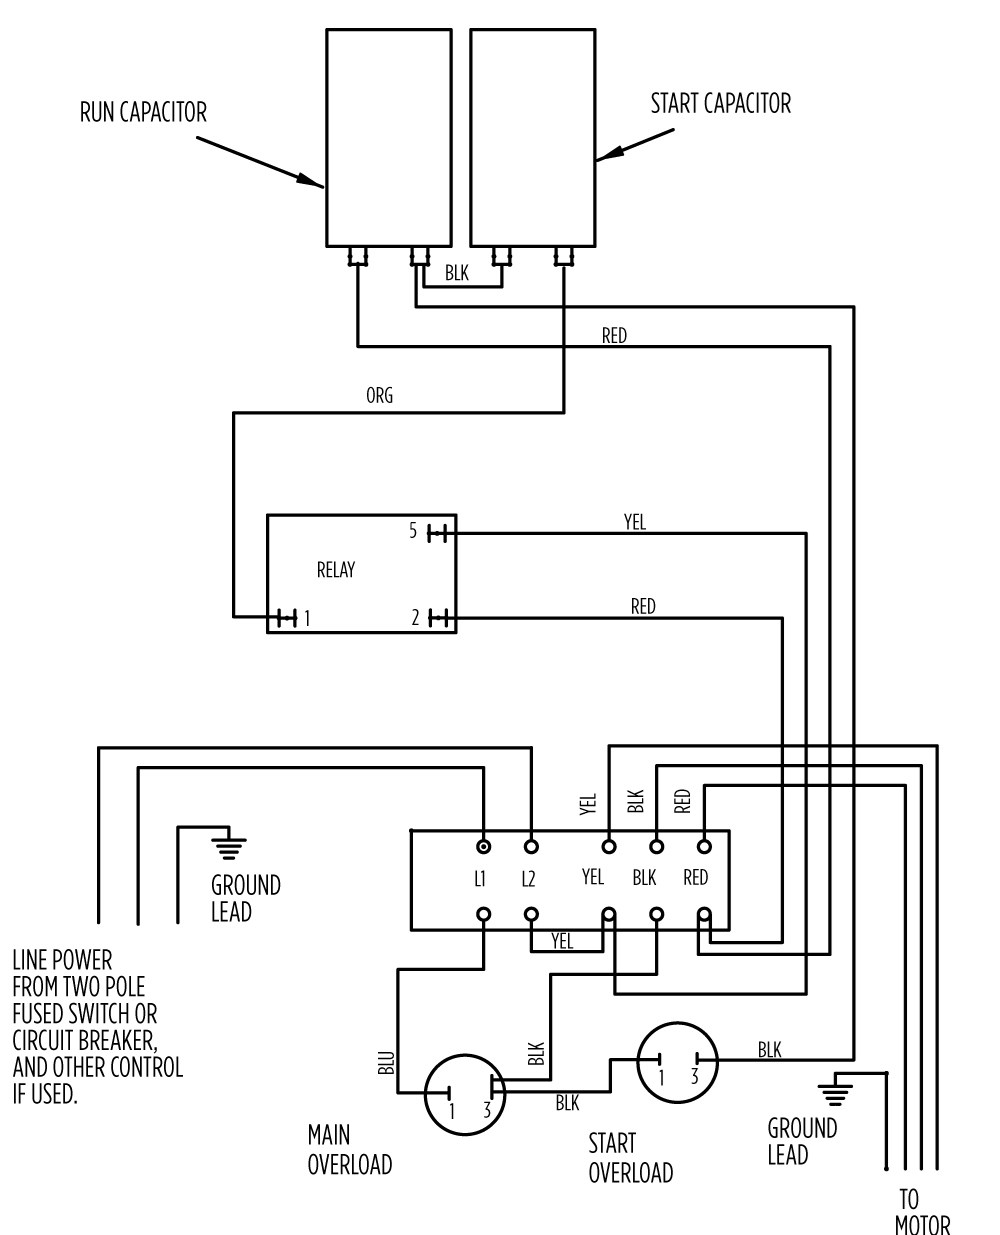 2 hp standard 282 301 8110_aim gallery?format=jpg&quality=80 aim manual page 55 single phase motors and controls motor Submersible Well Pumps Diagrams at bakdesigns.co